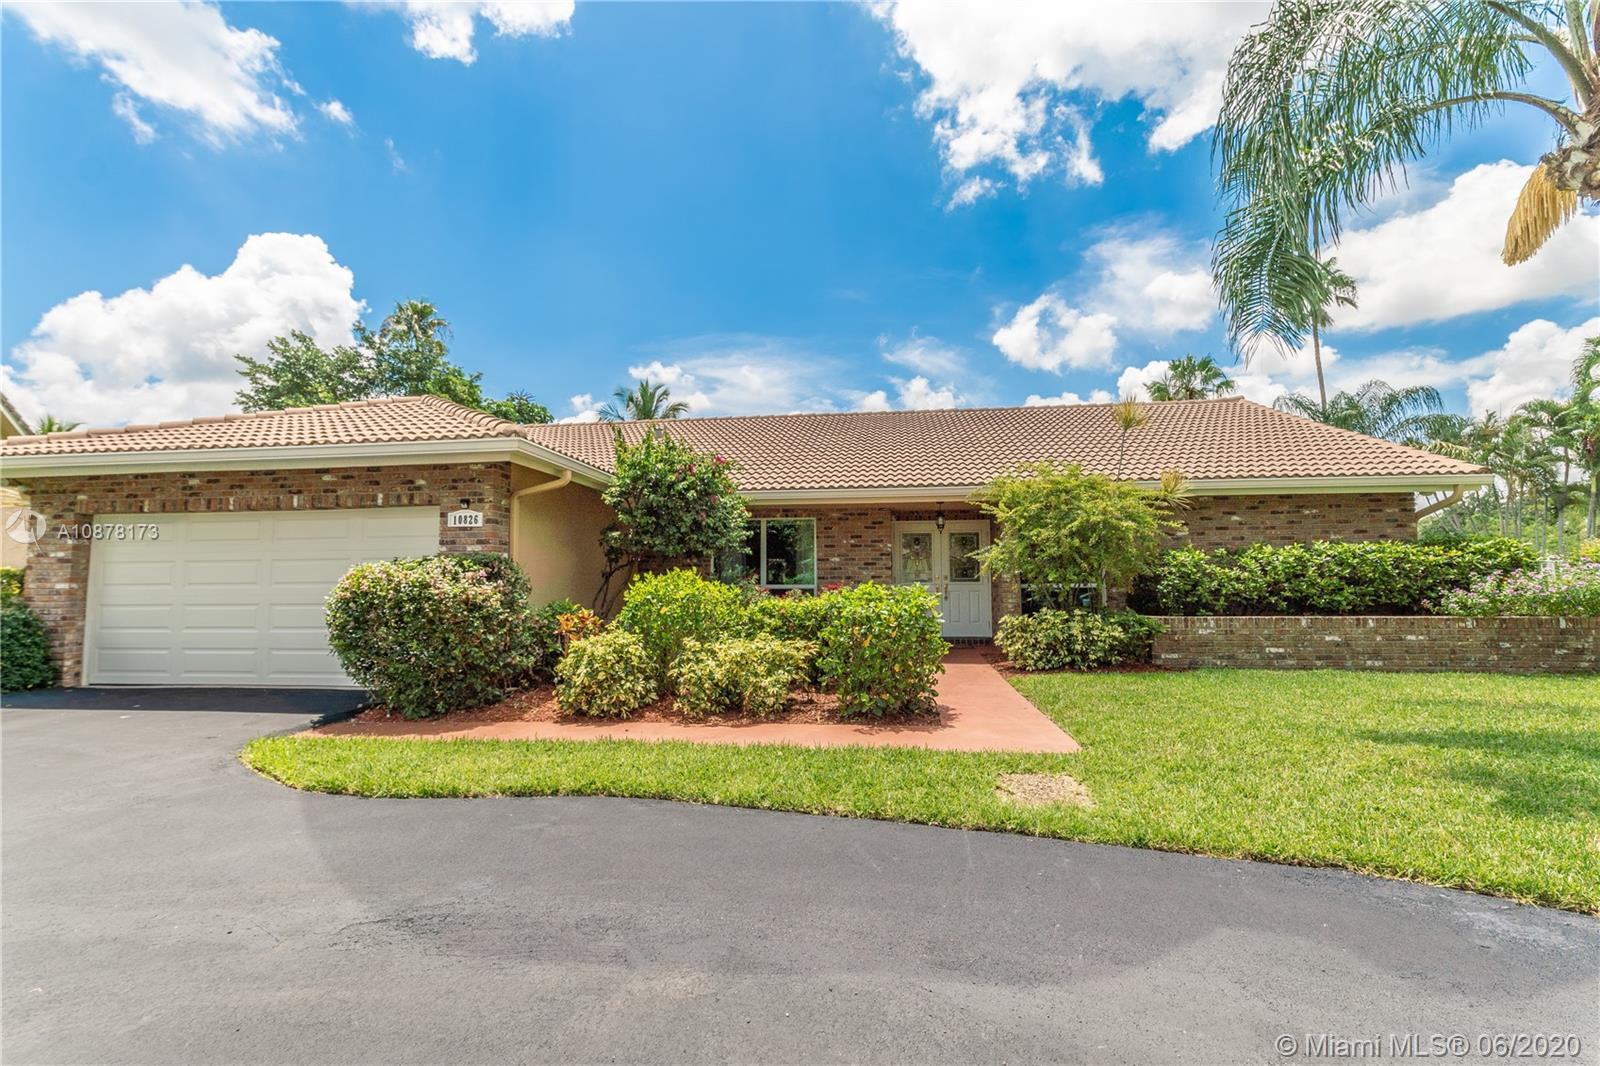 **Stunning 4/2.5 plus Den Pool Home on Oversize Waterfront Lot in the Heart of Coral Springs. Breathtaking Travertine floors throughout common areas and bathroom. All bedrooms are porcelain Upgraded Kitchen complete with Quartz countertops, designer cabinets, and stainless steel appliances. Remodeled bathrooms, desirable split floorplan, Hurricane impact windows and doors throughout. Enjoy spacious covered screened in patio overlooking sparkling pool with serene water views. Den can be easily converted into 5th bedroom if needed. It has been well maintained and kept in immaculate condition. This home is immaculate and displays true pride of ownership.